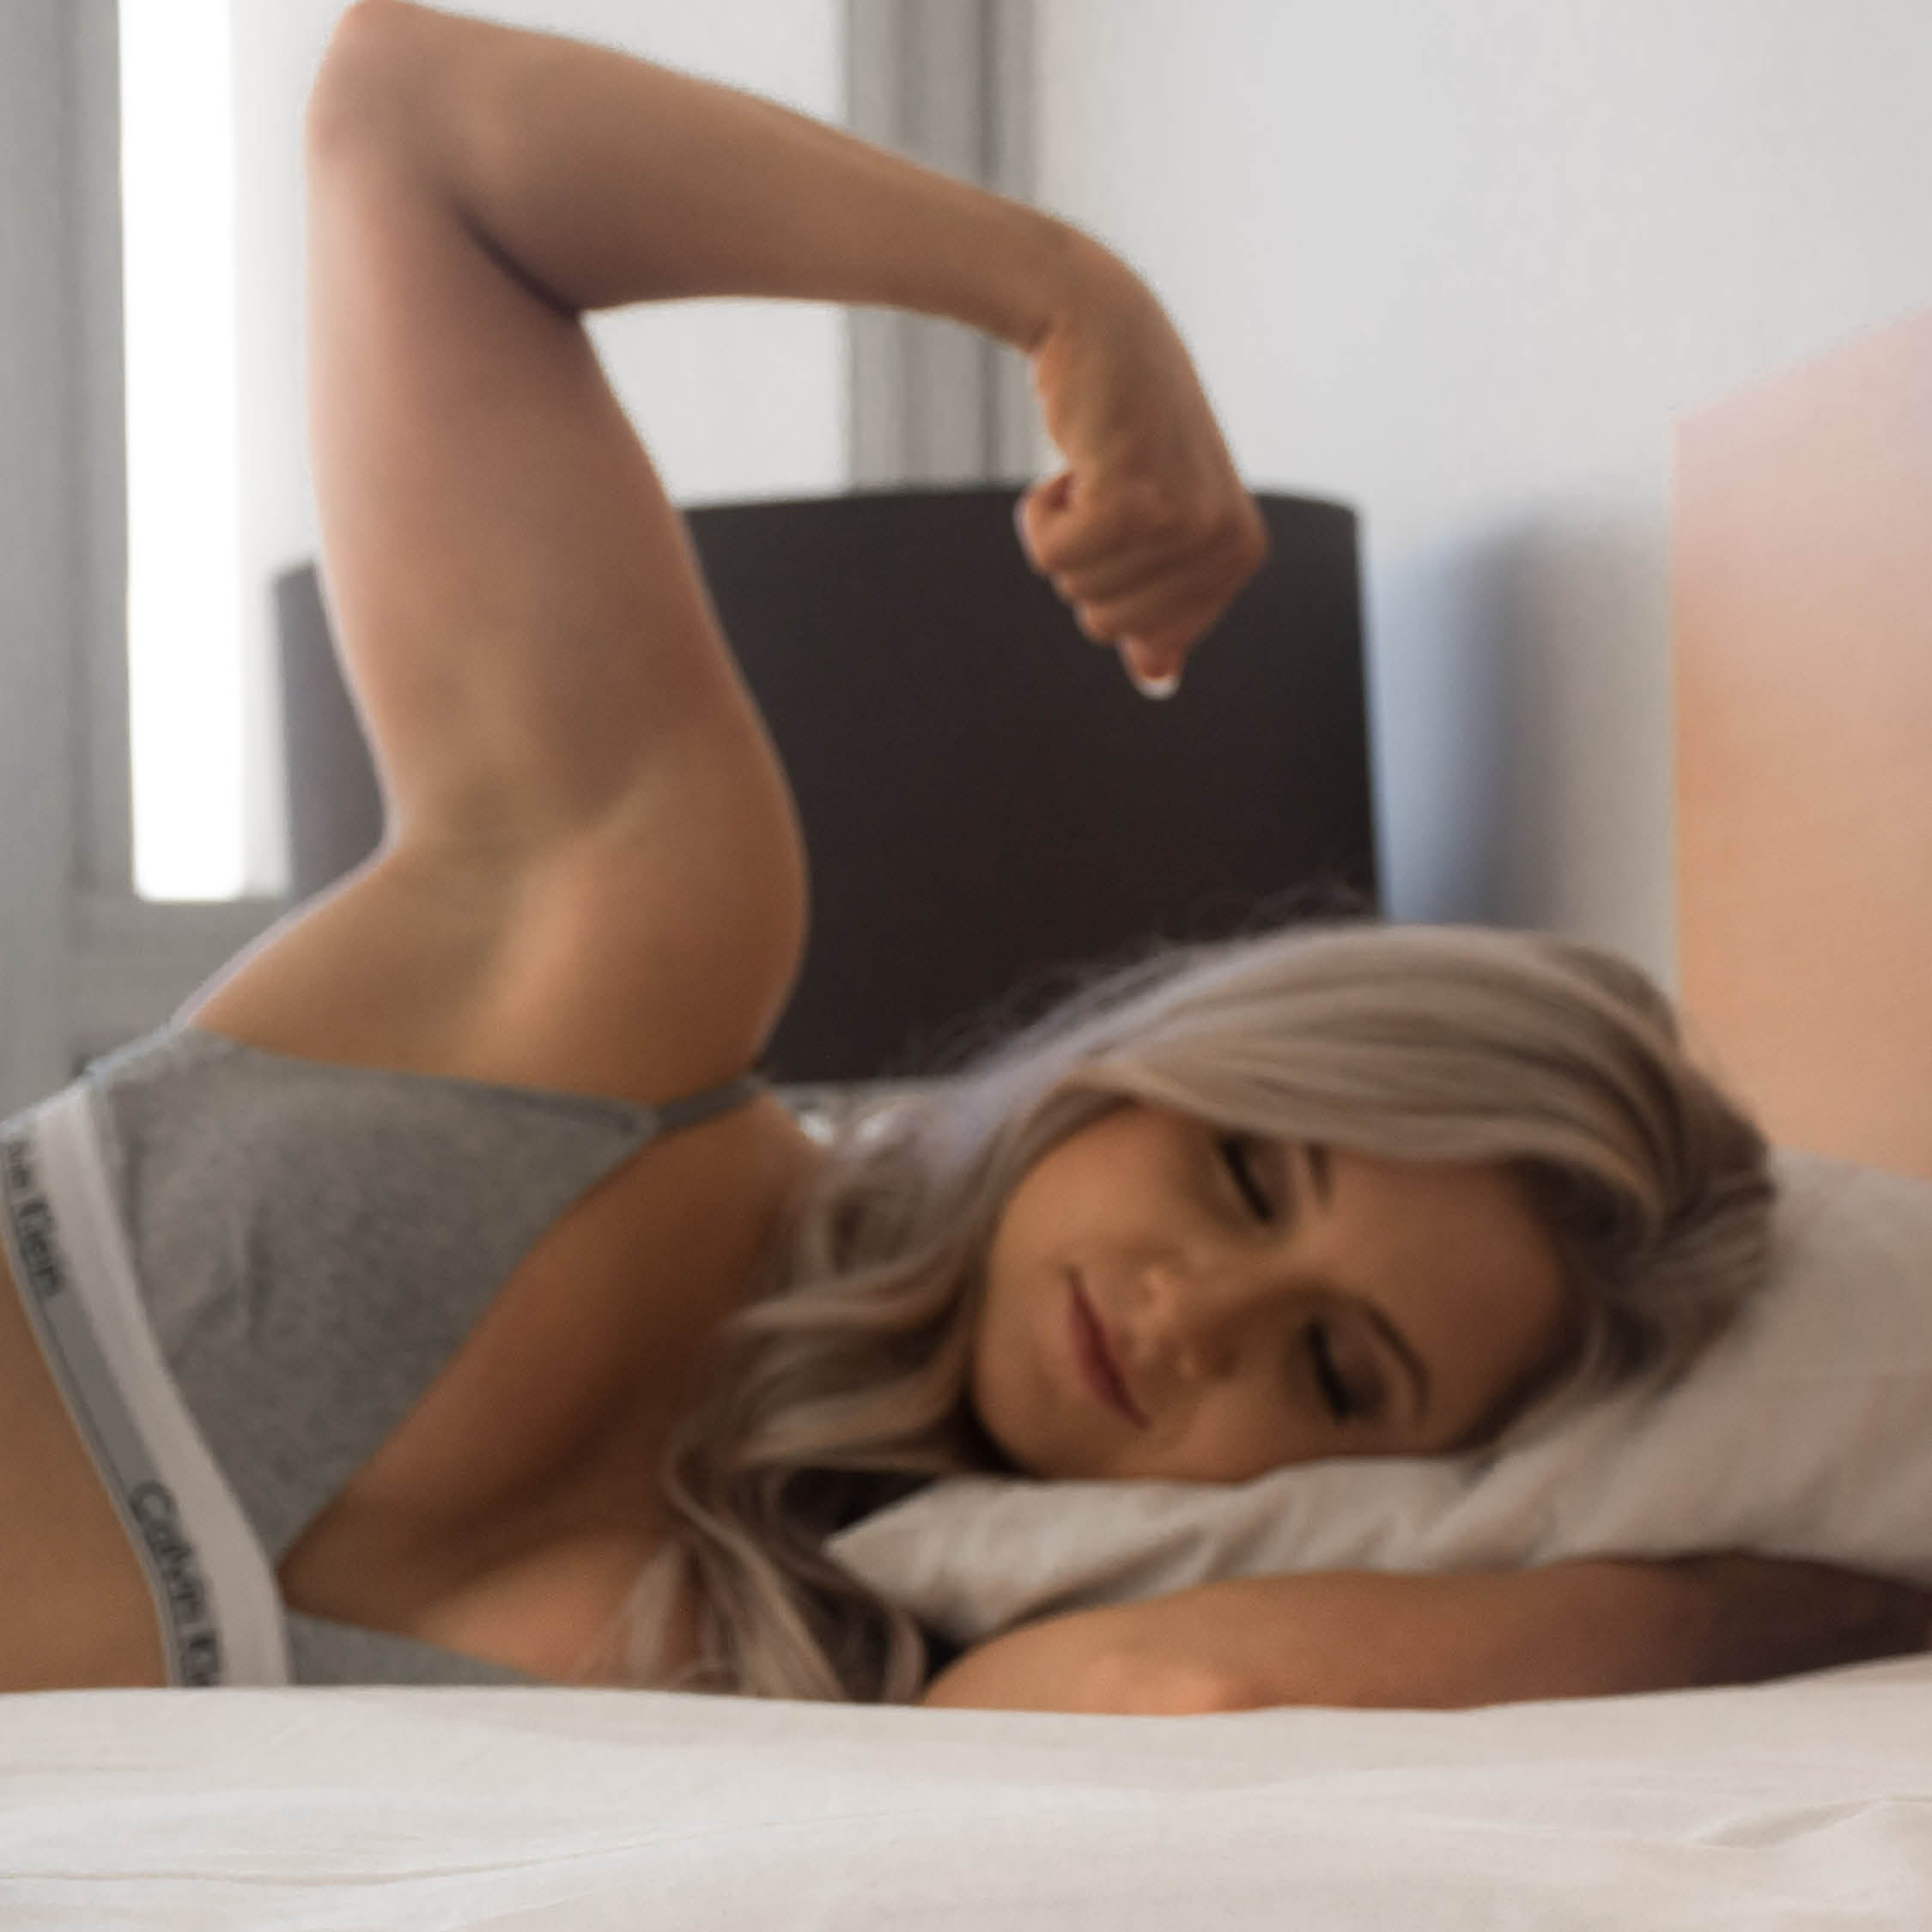 SLEEP: IT MAY HELP YOU BUILD MUSCLE AND BURN FAT